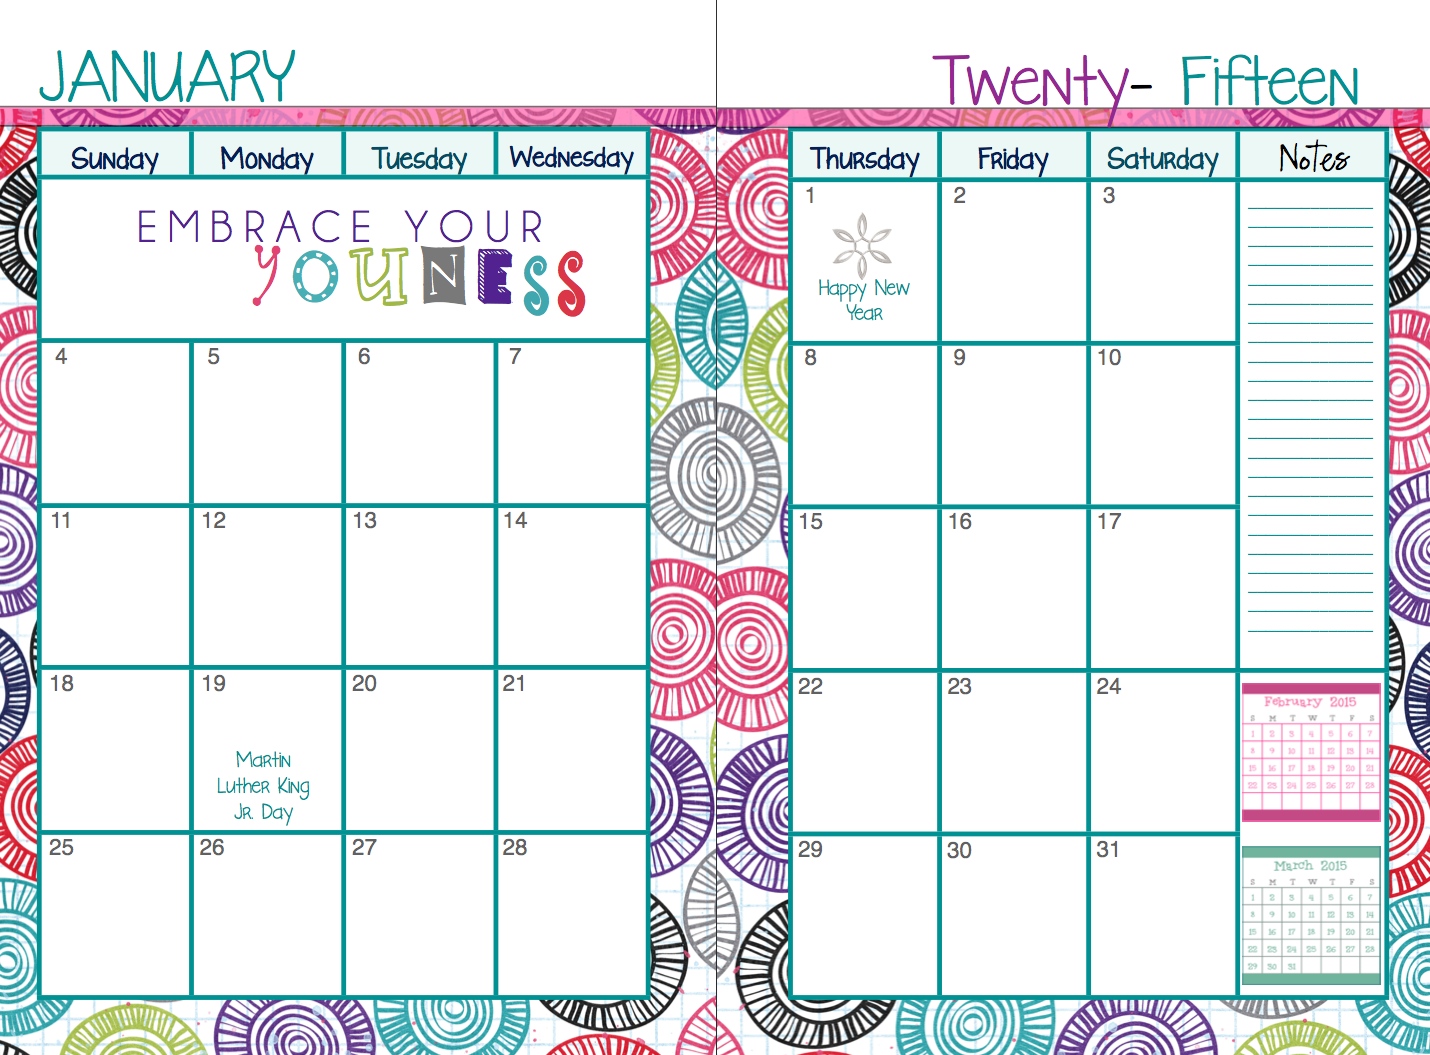 Calendar Quotes For Every Month : Monthly quotes for each month quotesgram